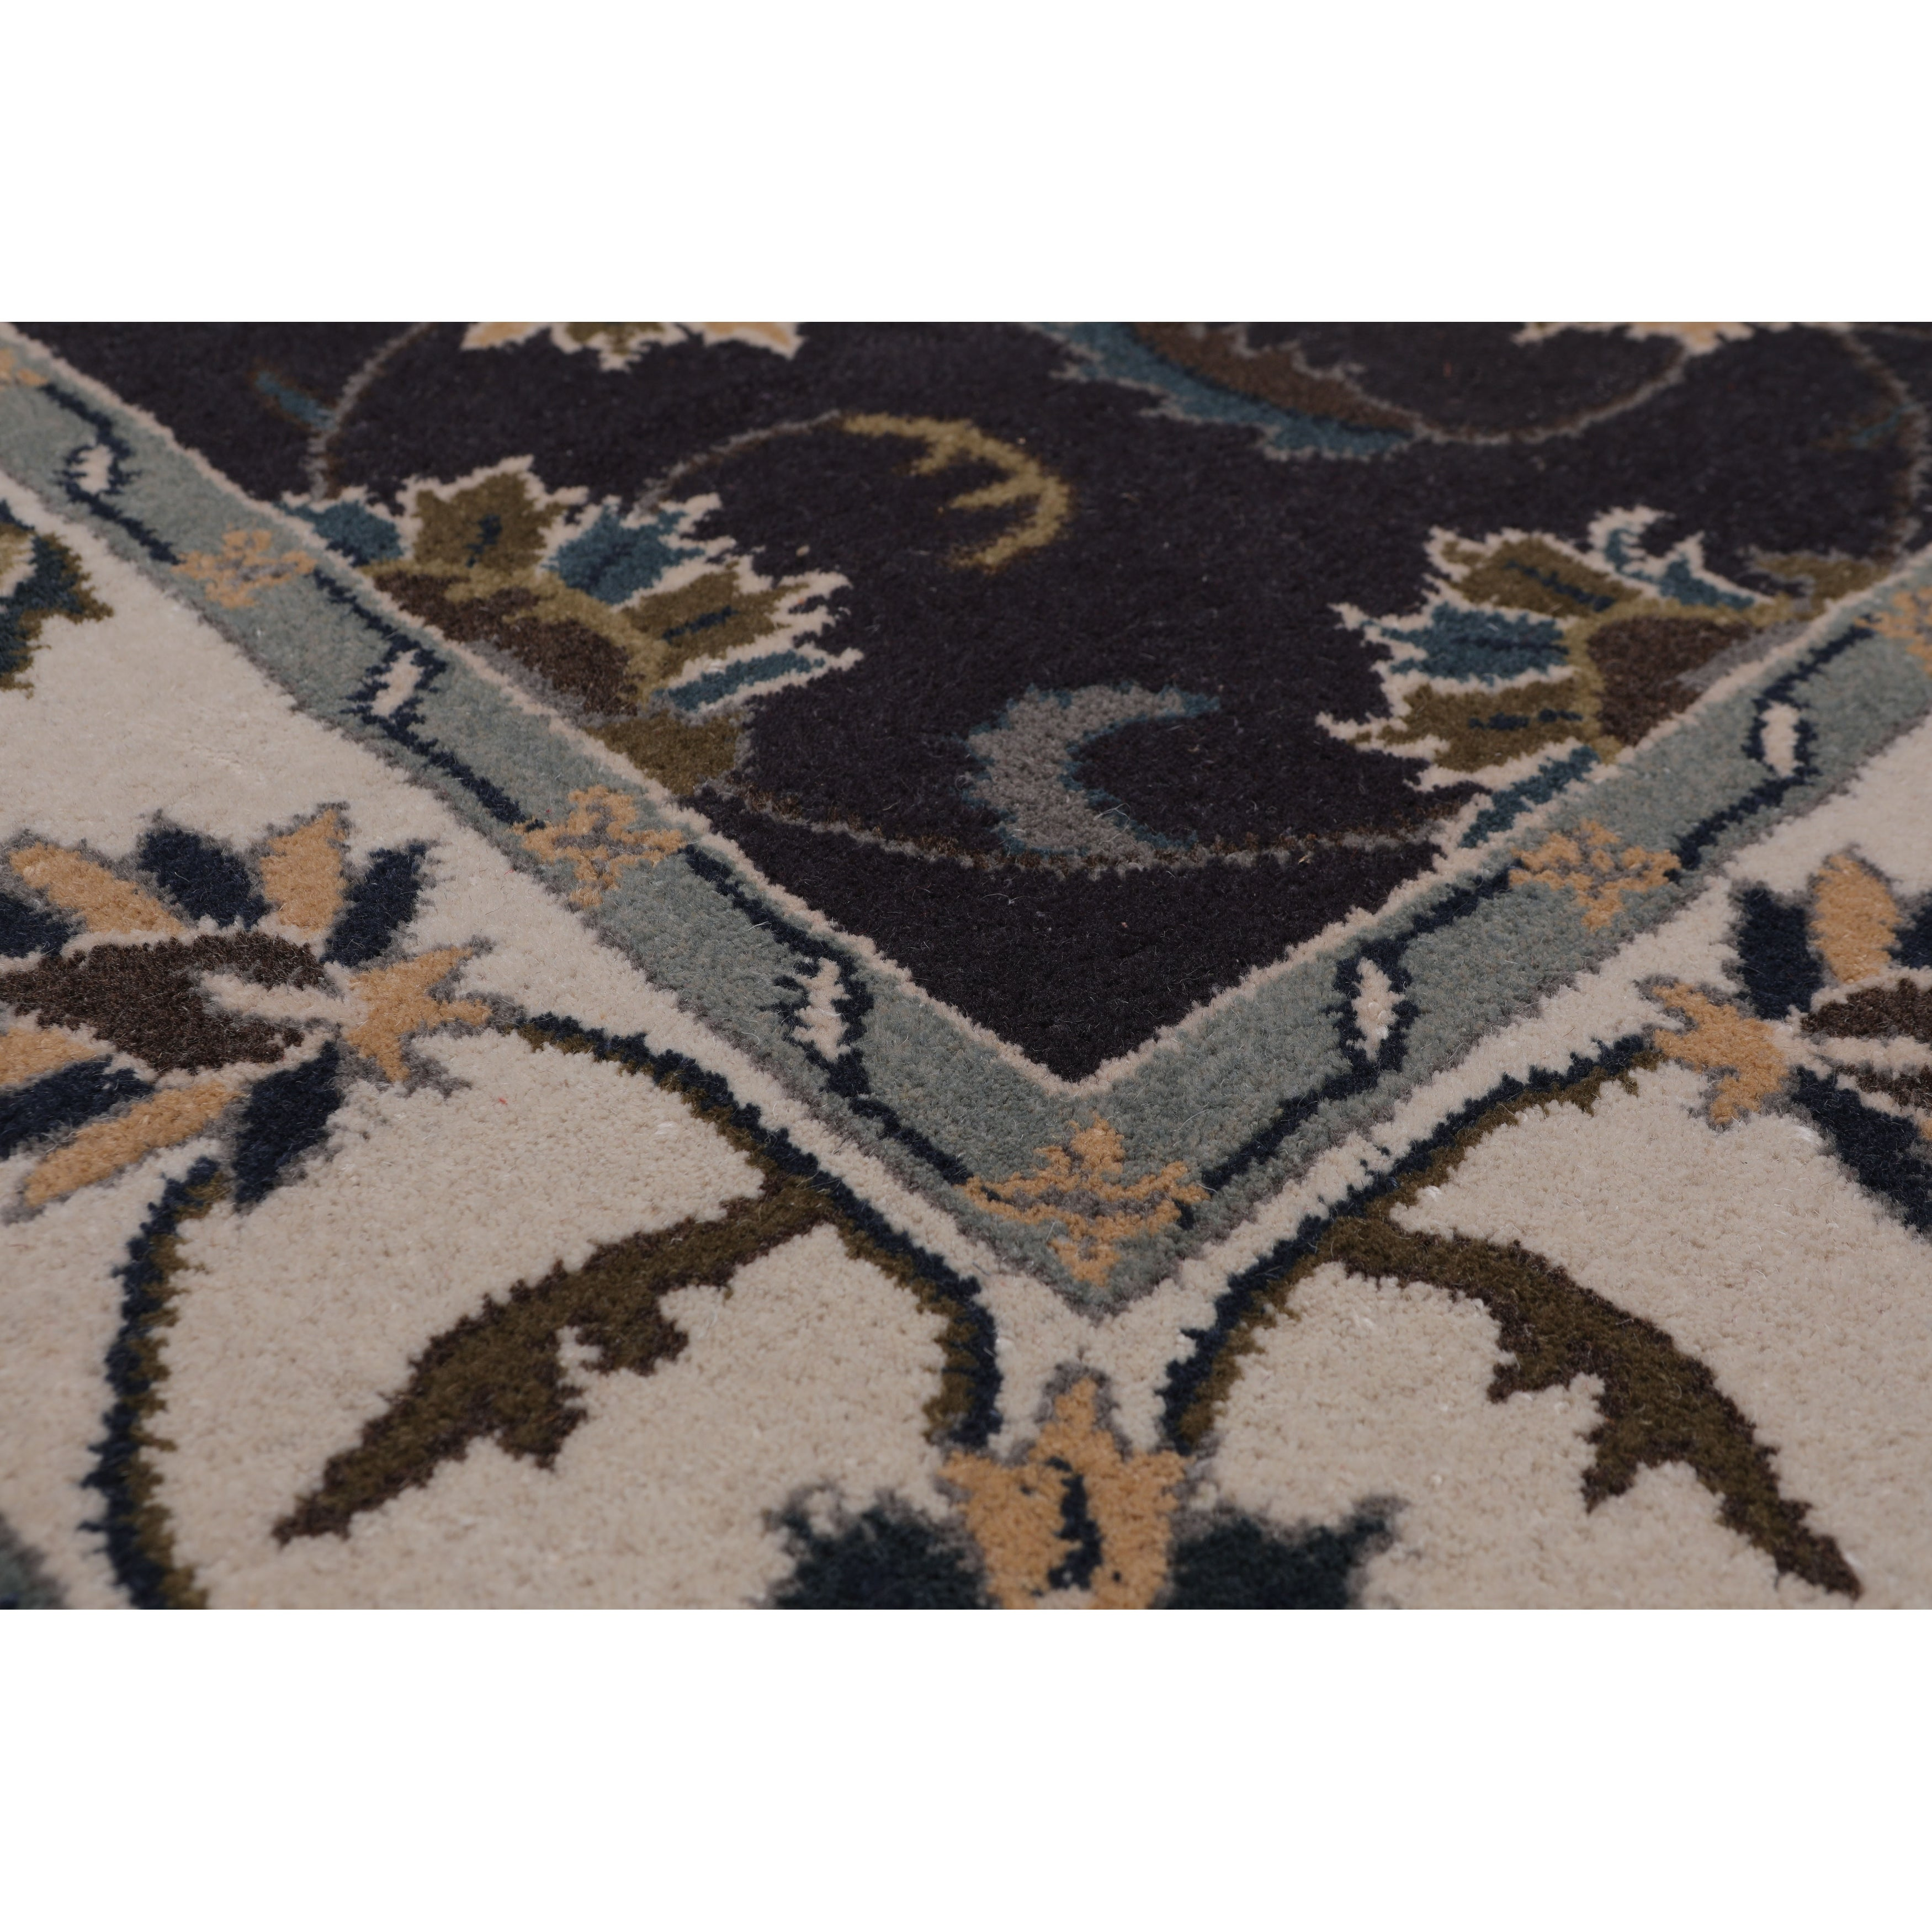 5 X8 Hand Tufted Wool Floral Kashan Oriental Area Rug Charcoal Beige Color 5 X 8 On Sale Overstock 31310731